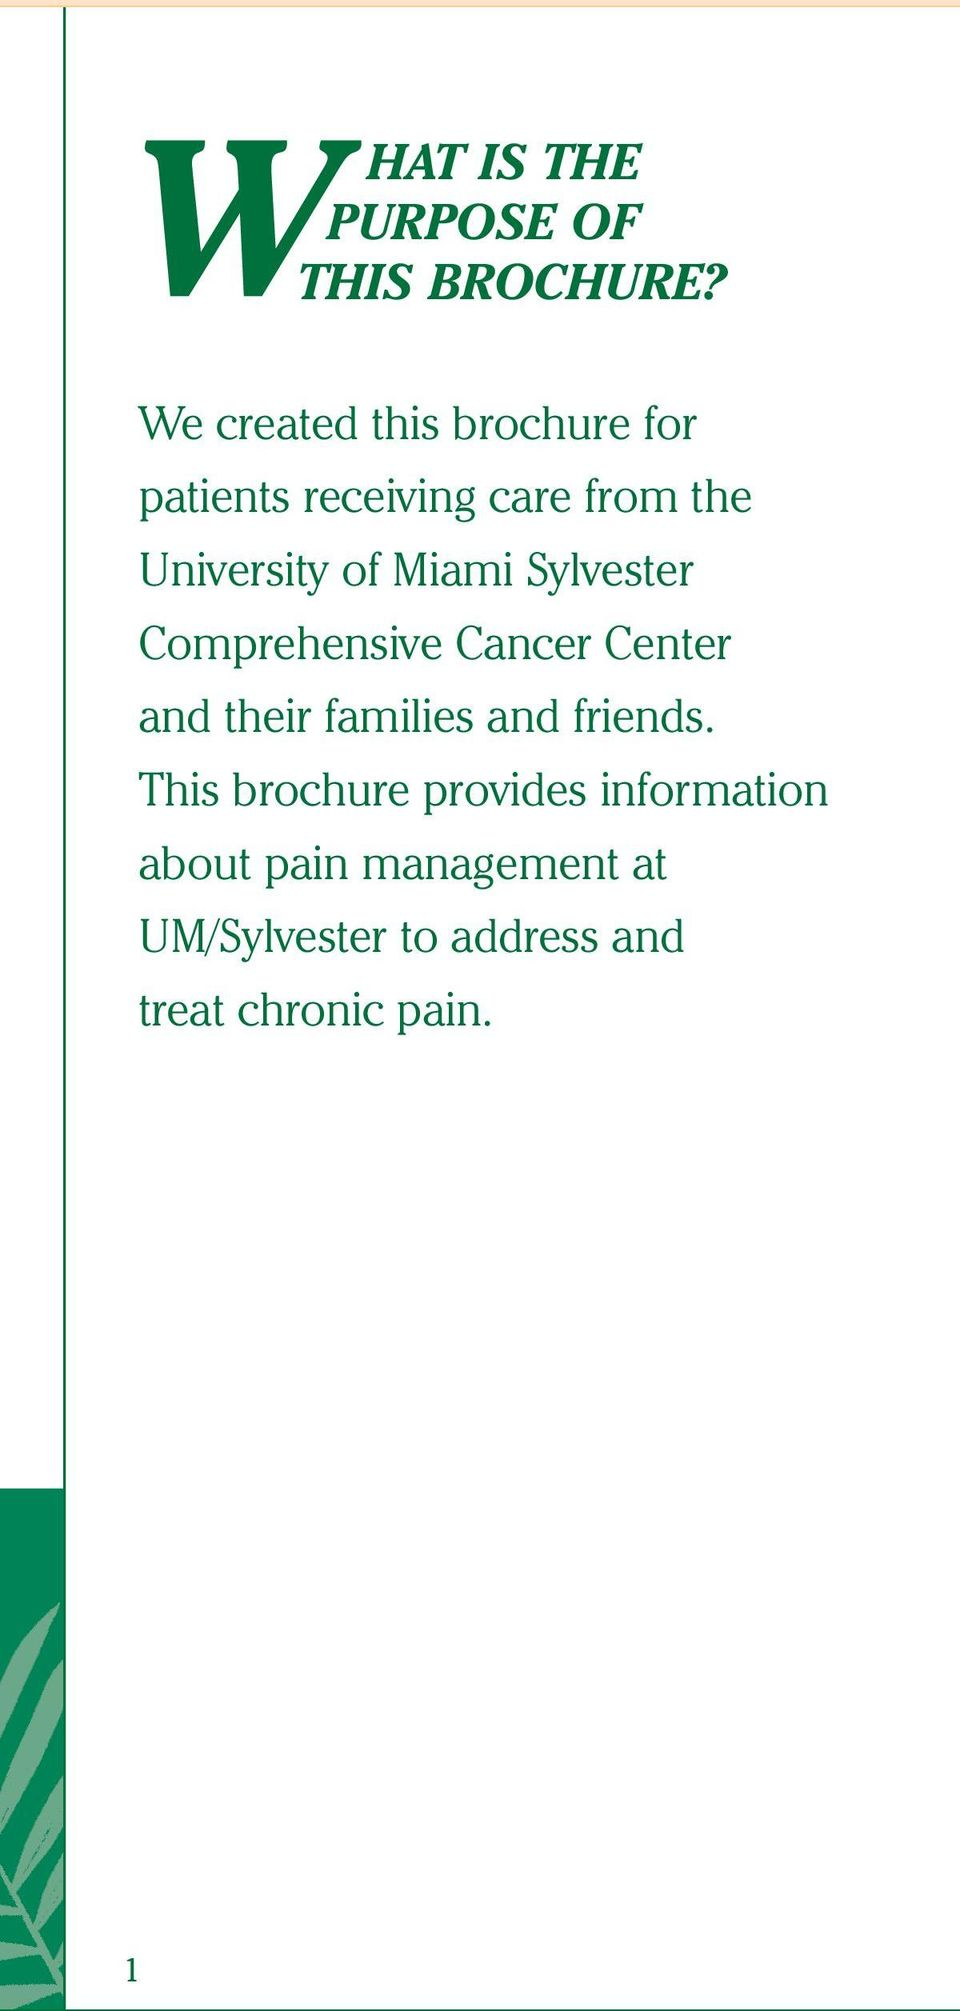 of Miami Sylvester Comprehensive Cancer Center and their families and